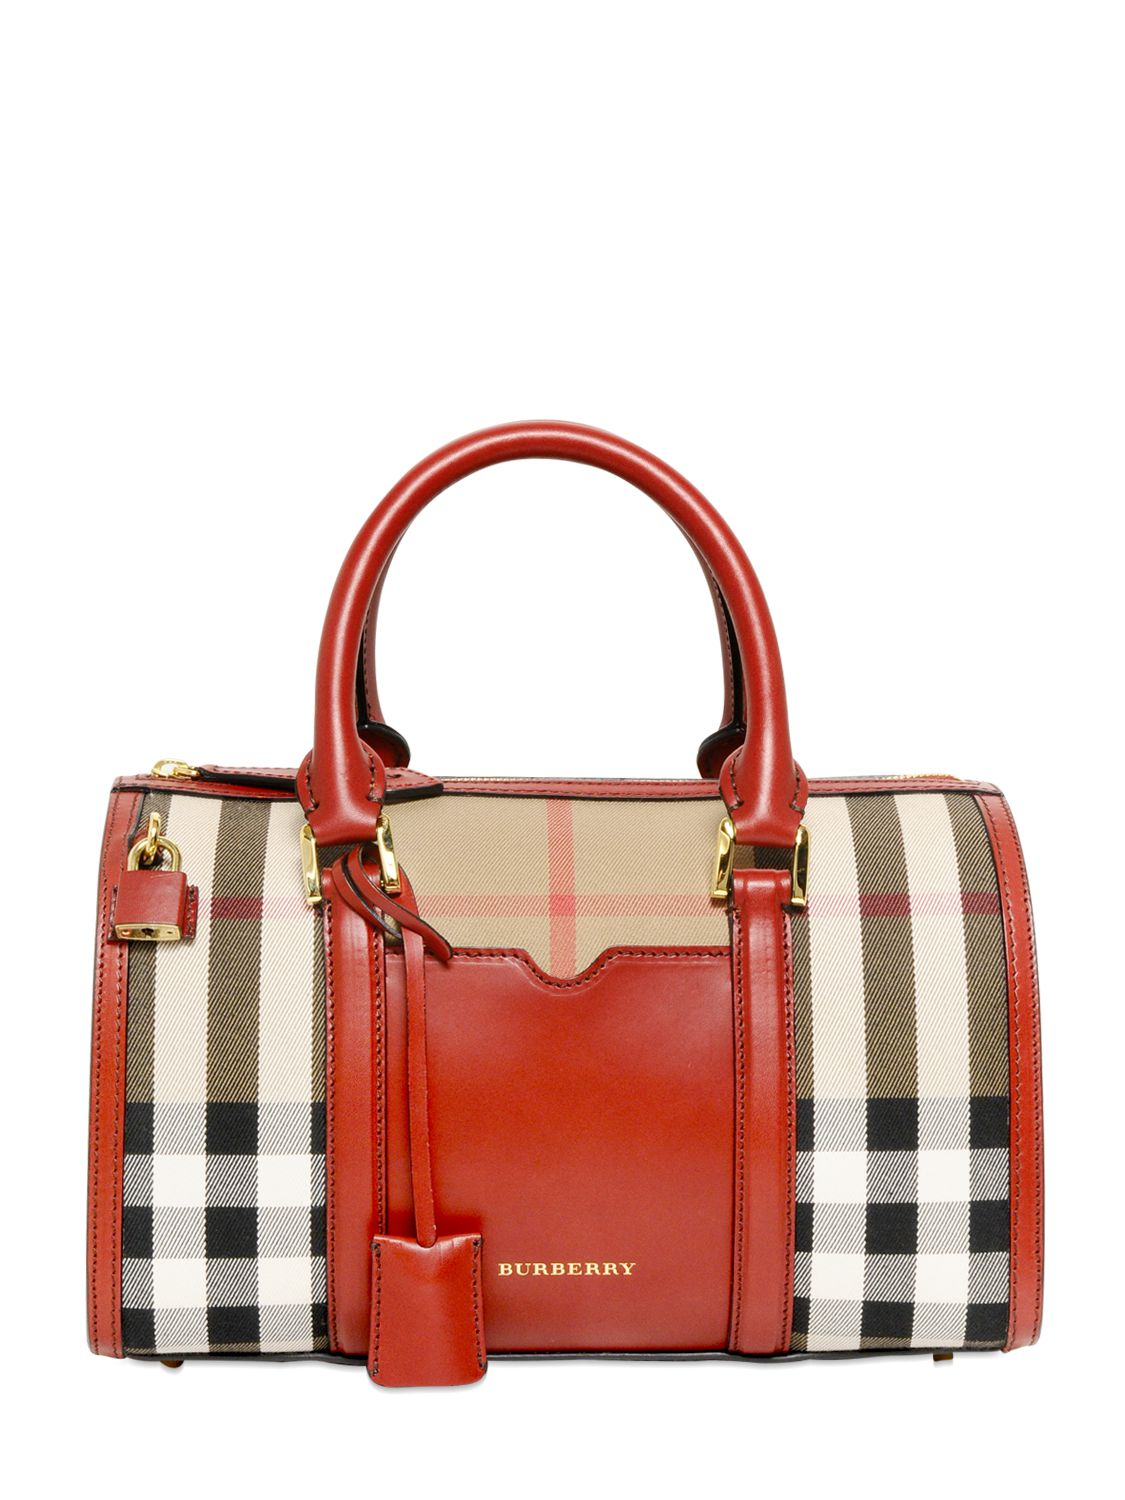 e7232880b7c Burberry Medium Alchester Bridle House Check Bag in Red - Lyst